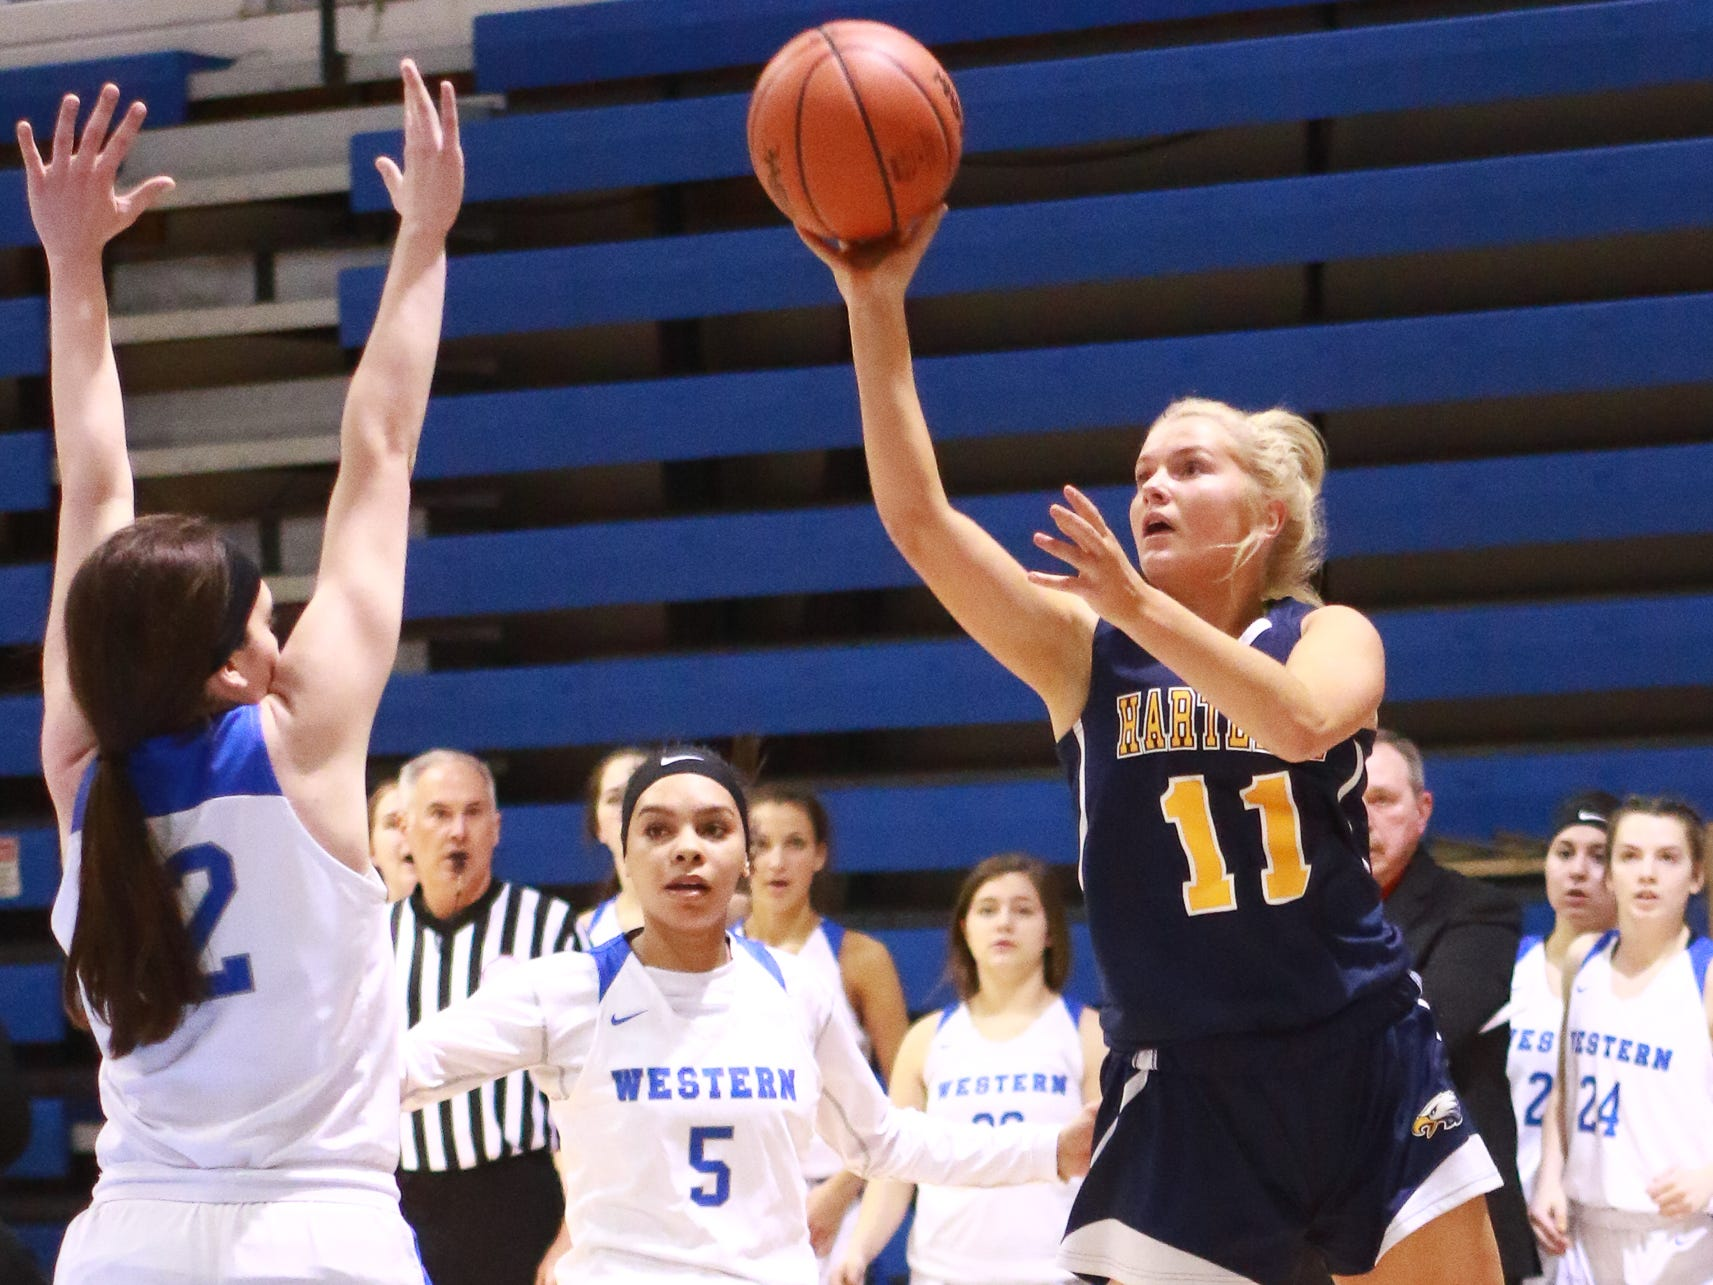 Hartland's Amanda Roach takes a one-handed shot in a 50-46 victory over Walled Lake Western in the Division 1 regional championship game at Lakeland on Wednesday, March 13, 2019.